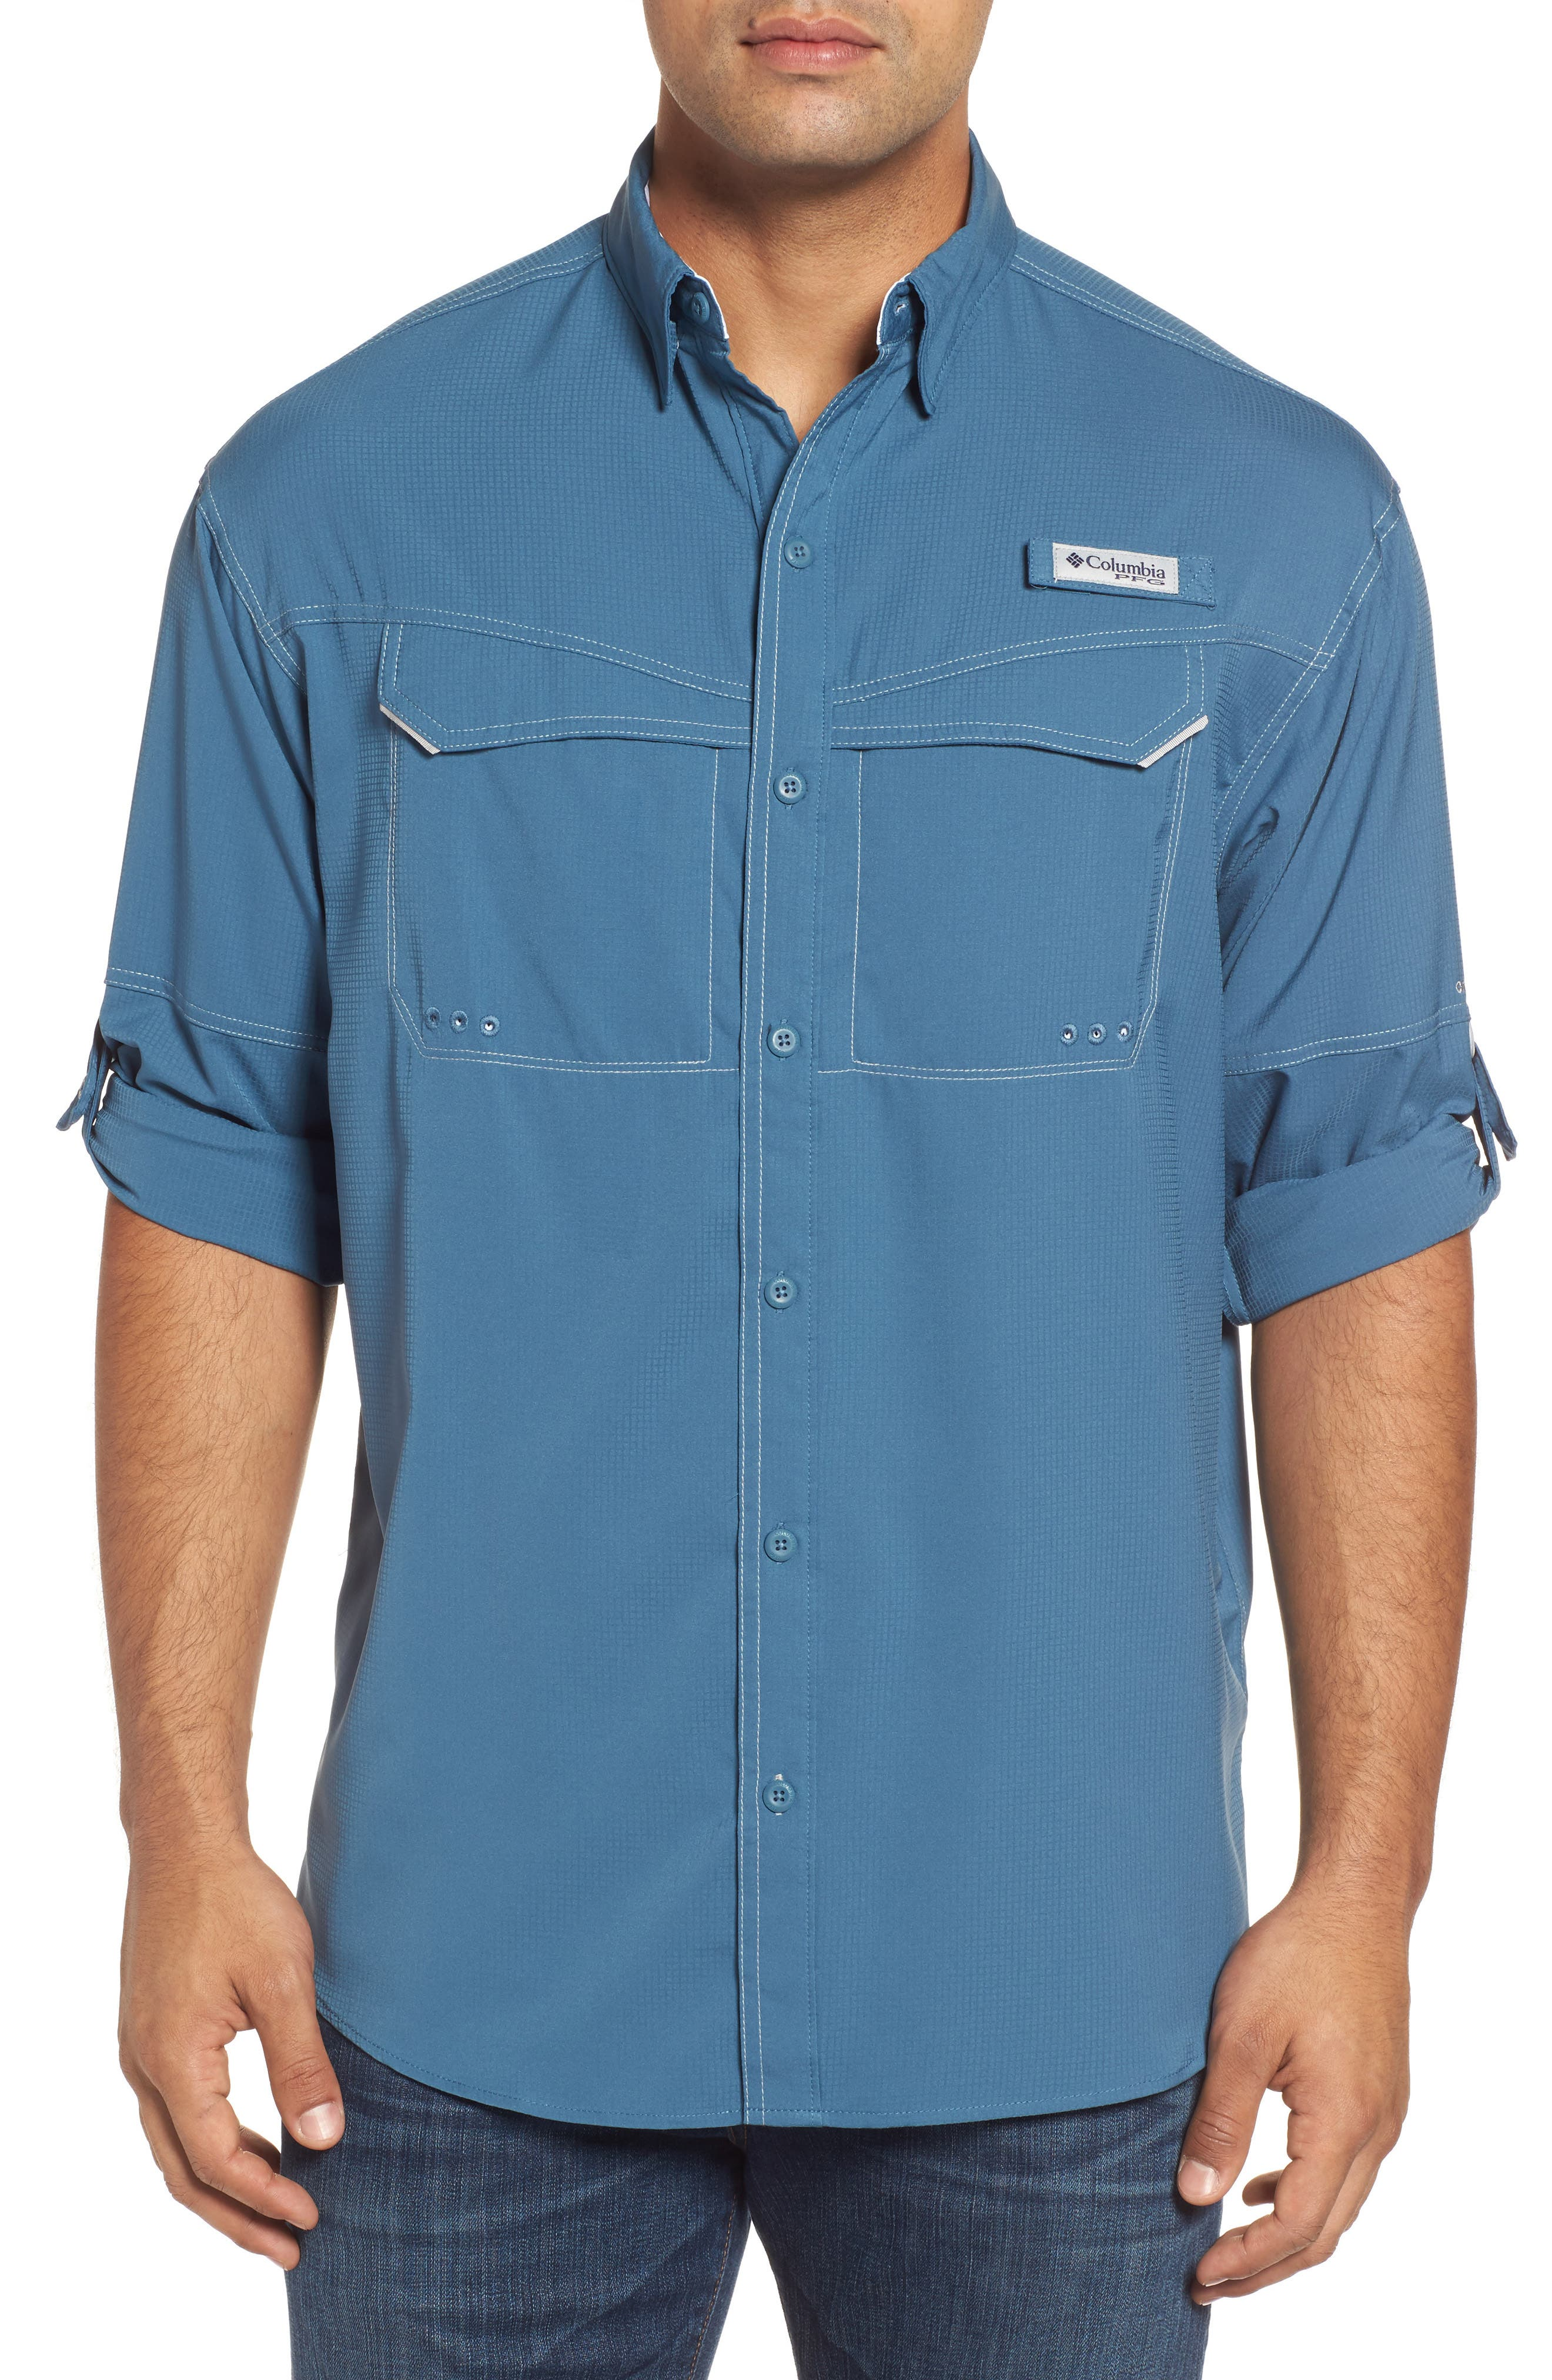 Main Image - Columbia Low Drag Offshore Woven Shirt